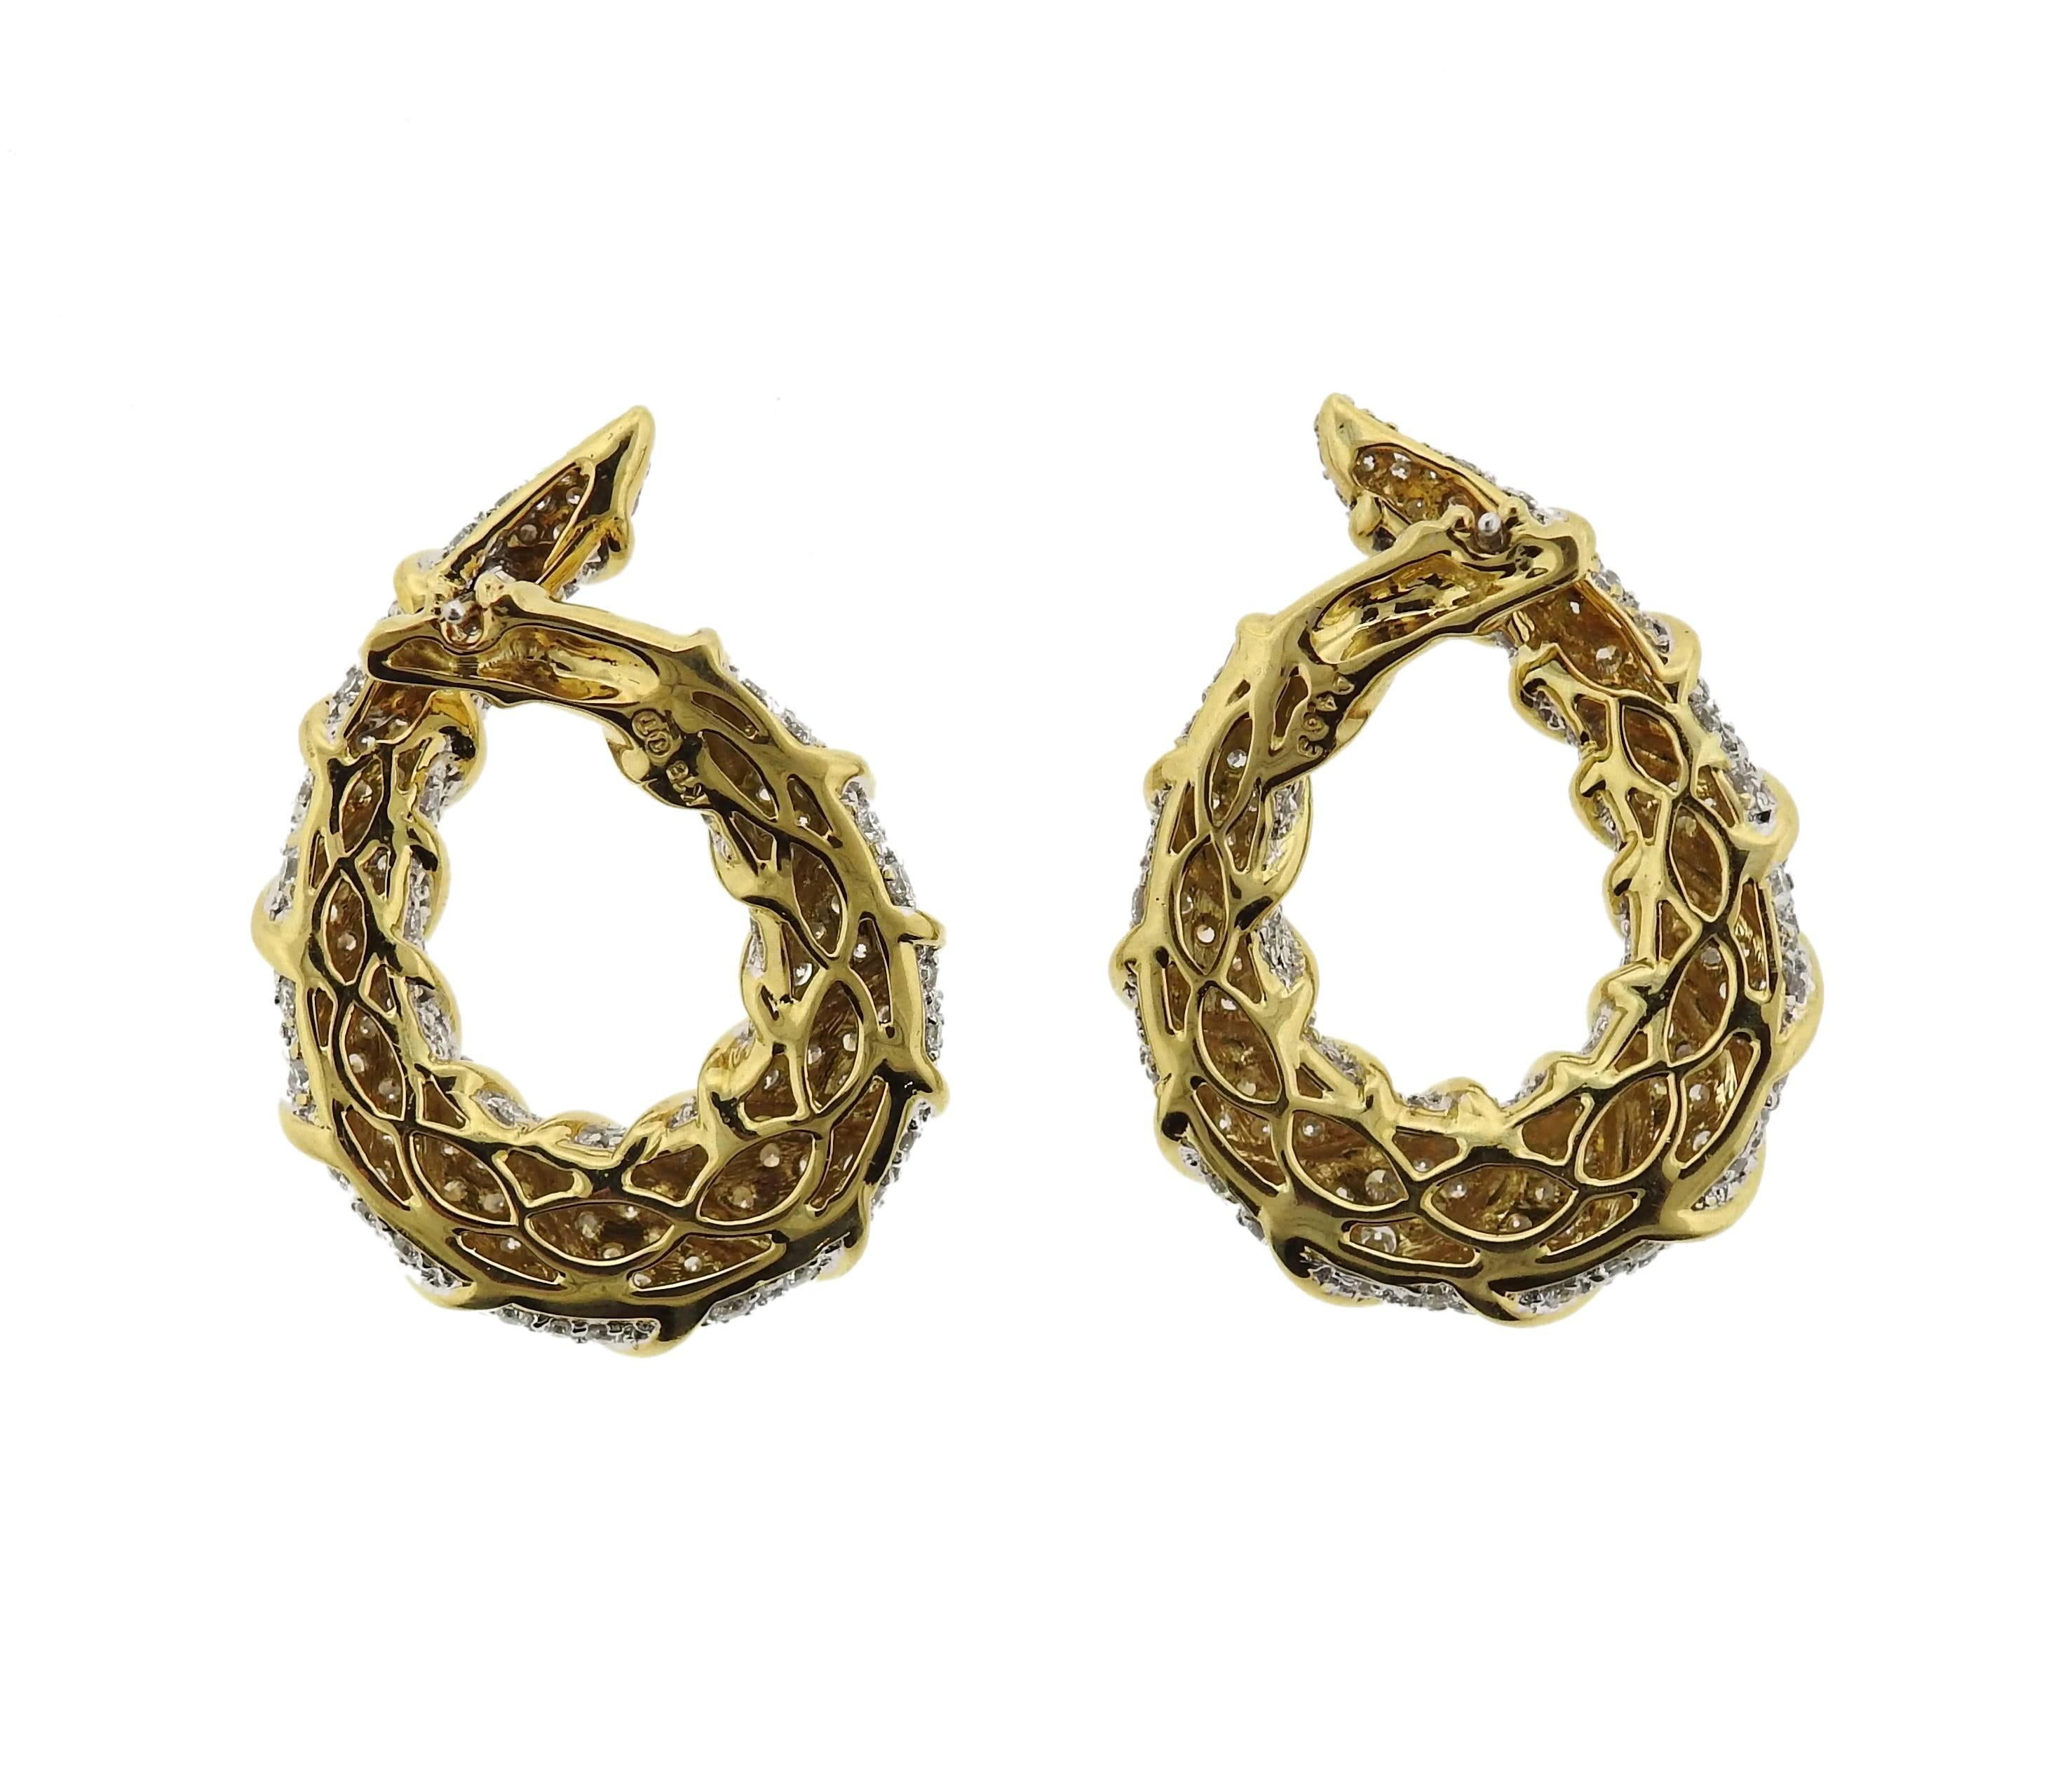 1980s Classic Diamond Gold Hoop Earrings For Sale at 1stdibs